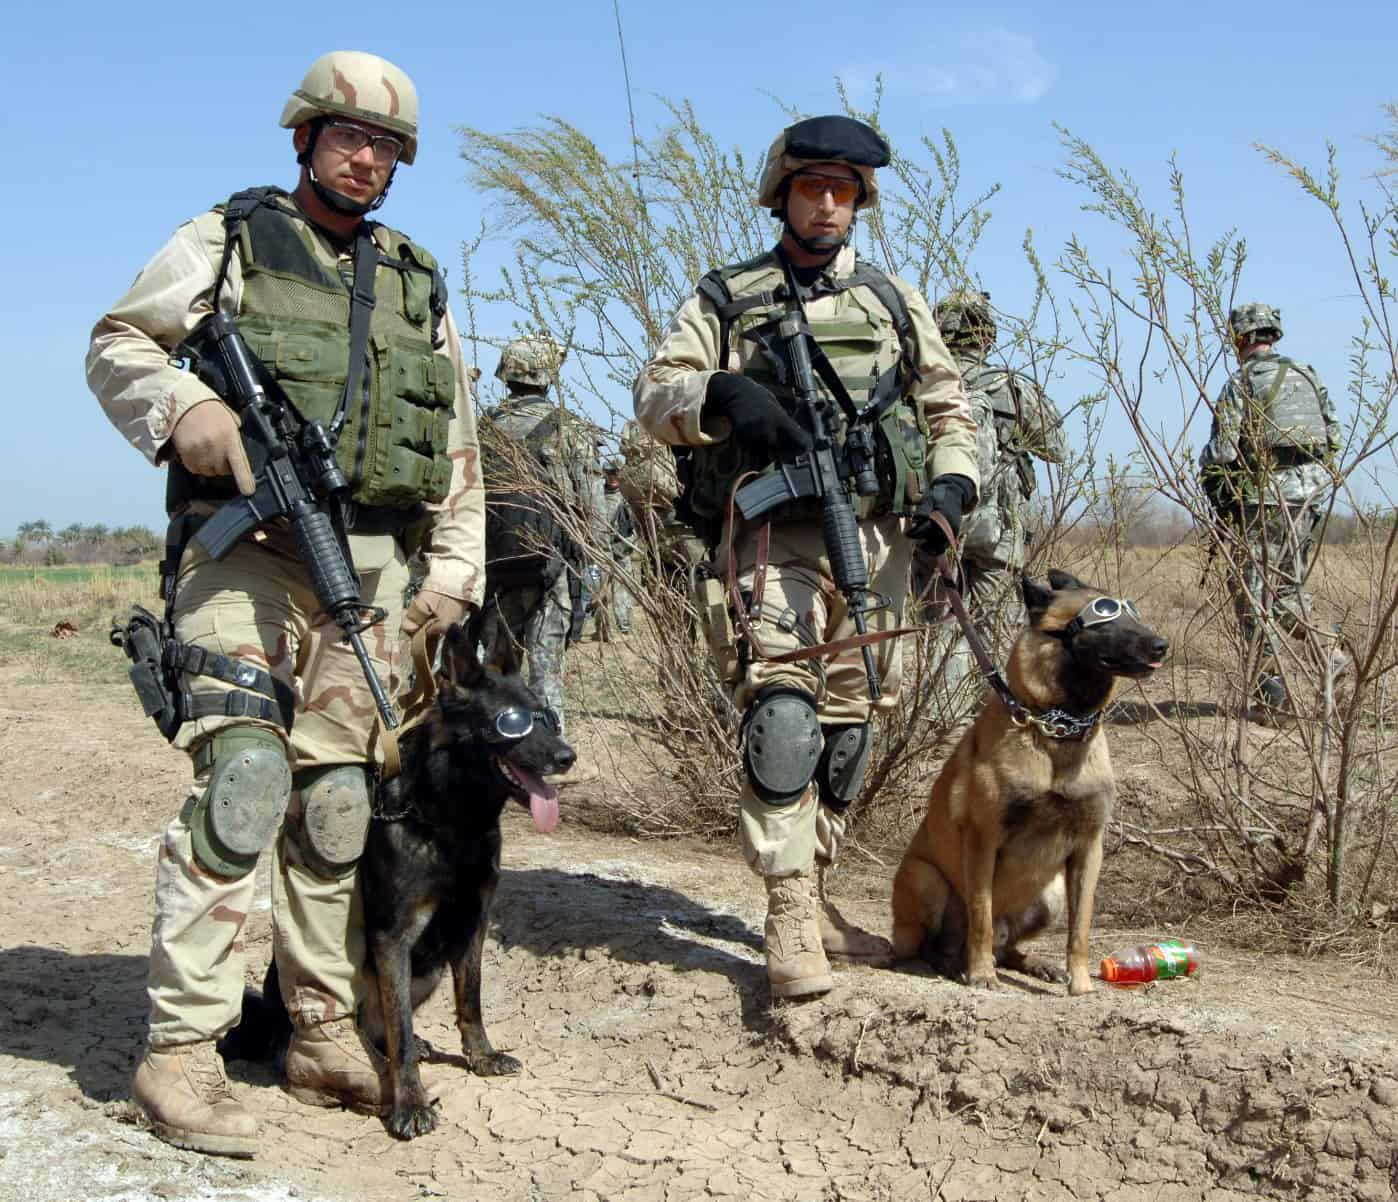 "Tech. Sgt. John Mascolo and his military working dog, Ajax, left, await a helicopter pickup with Staff Sgt. Manny Garcia and his dog, Jimmy, outside Forward Operating Base Normandy, Iraq, on Tuesday, Feb. 28, 2006. The dogs are wearing ""doggles"" to prevent sand and debris from getting in their eyes during sandstorms or when near helicopters. The 35th Security Force Squadron Airmen and their dogs had completed a security sweep of a farmhouse looking for weapons and materials used to make improvised explosive devices. (U.S. Army photo/Pfc. William Servinski II)"